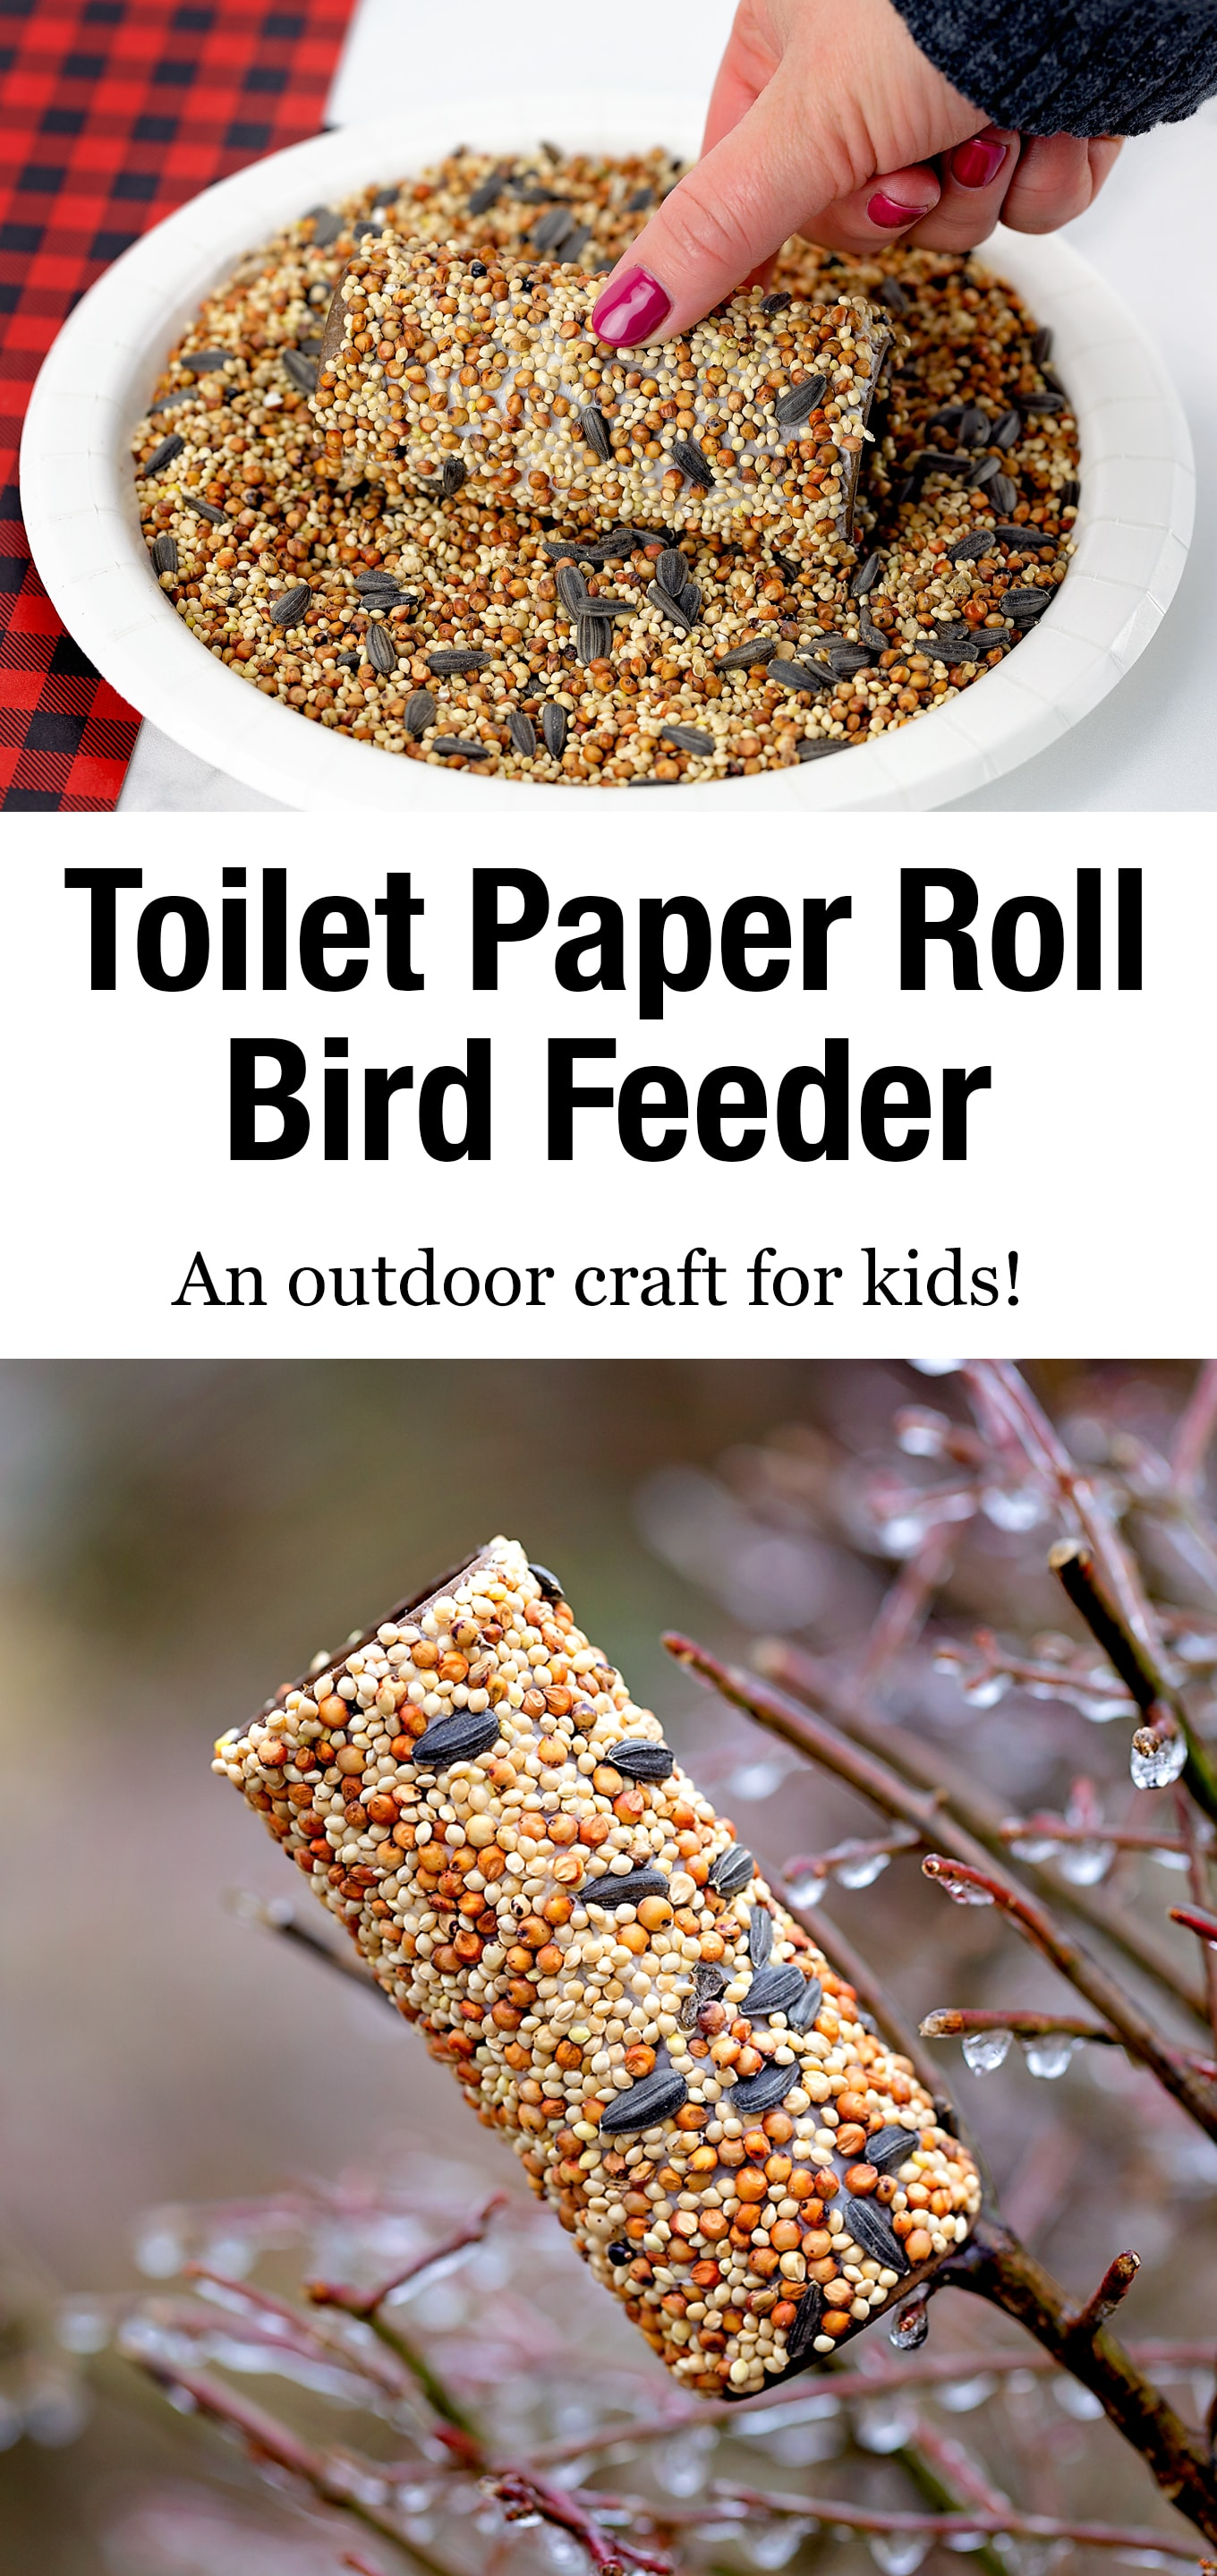 Wild birds will thank you for taking the time to make a Toilet Paper Roll Bird Feeder. It's an easy and fun bird feeder craft for kids of all ages! via @firefliesandmudpies